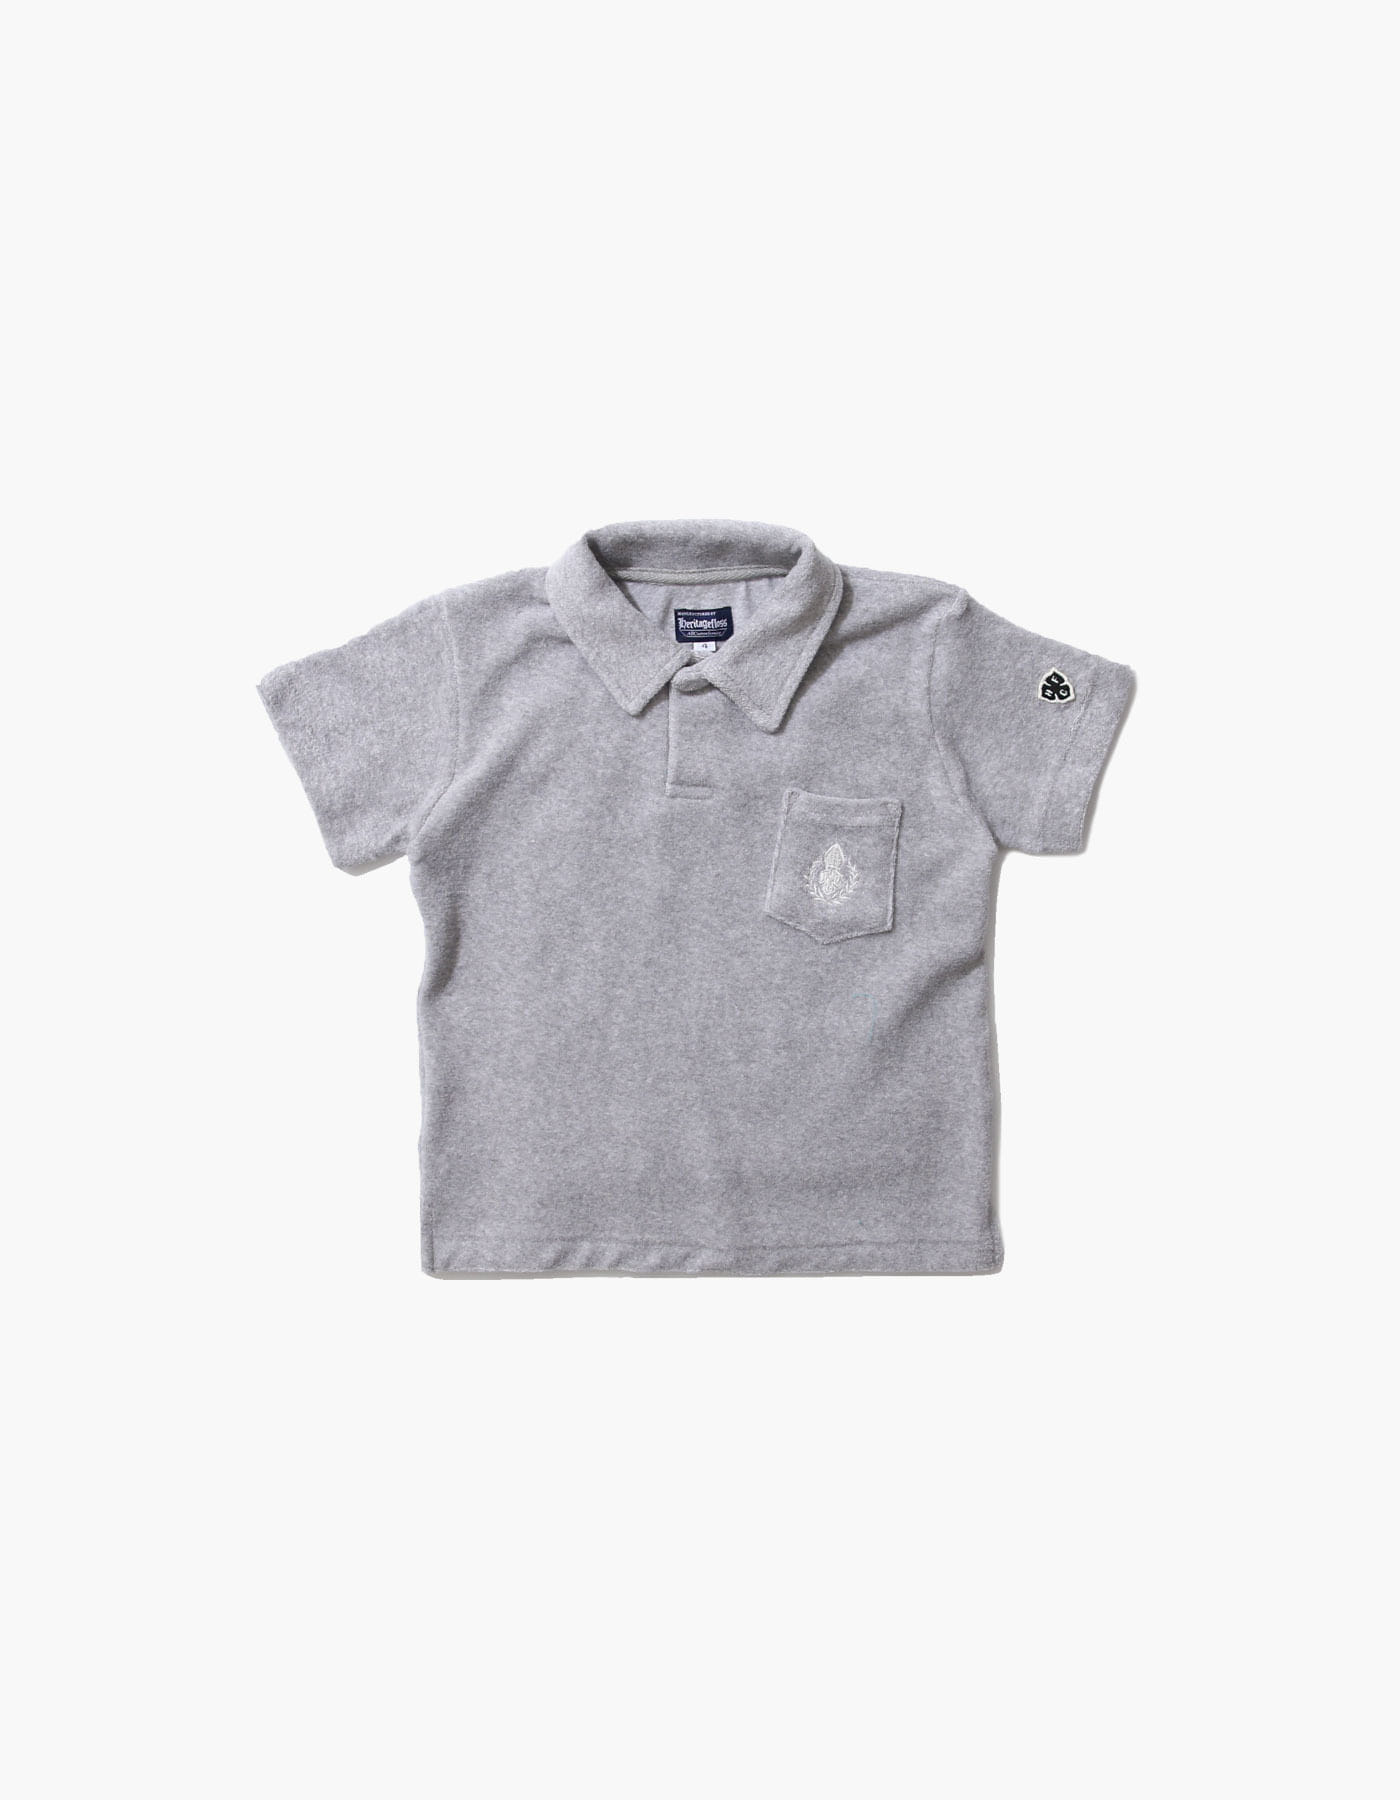 HFC CREST KIDS TOWEL POLO SHIRTS / M.GREY(5%)